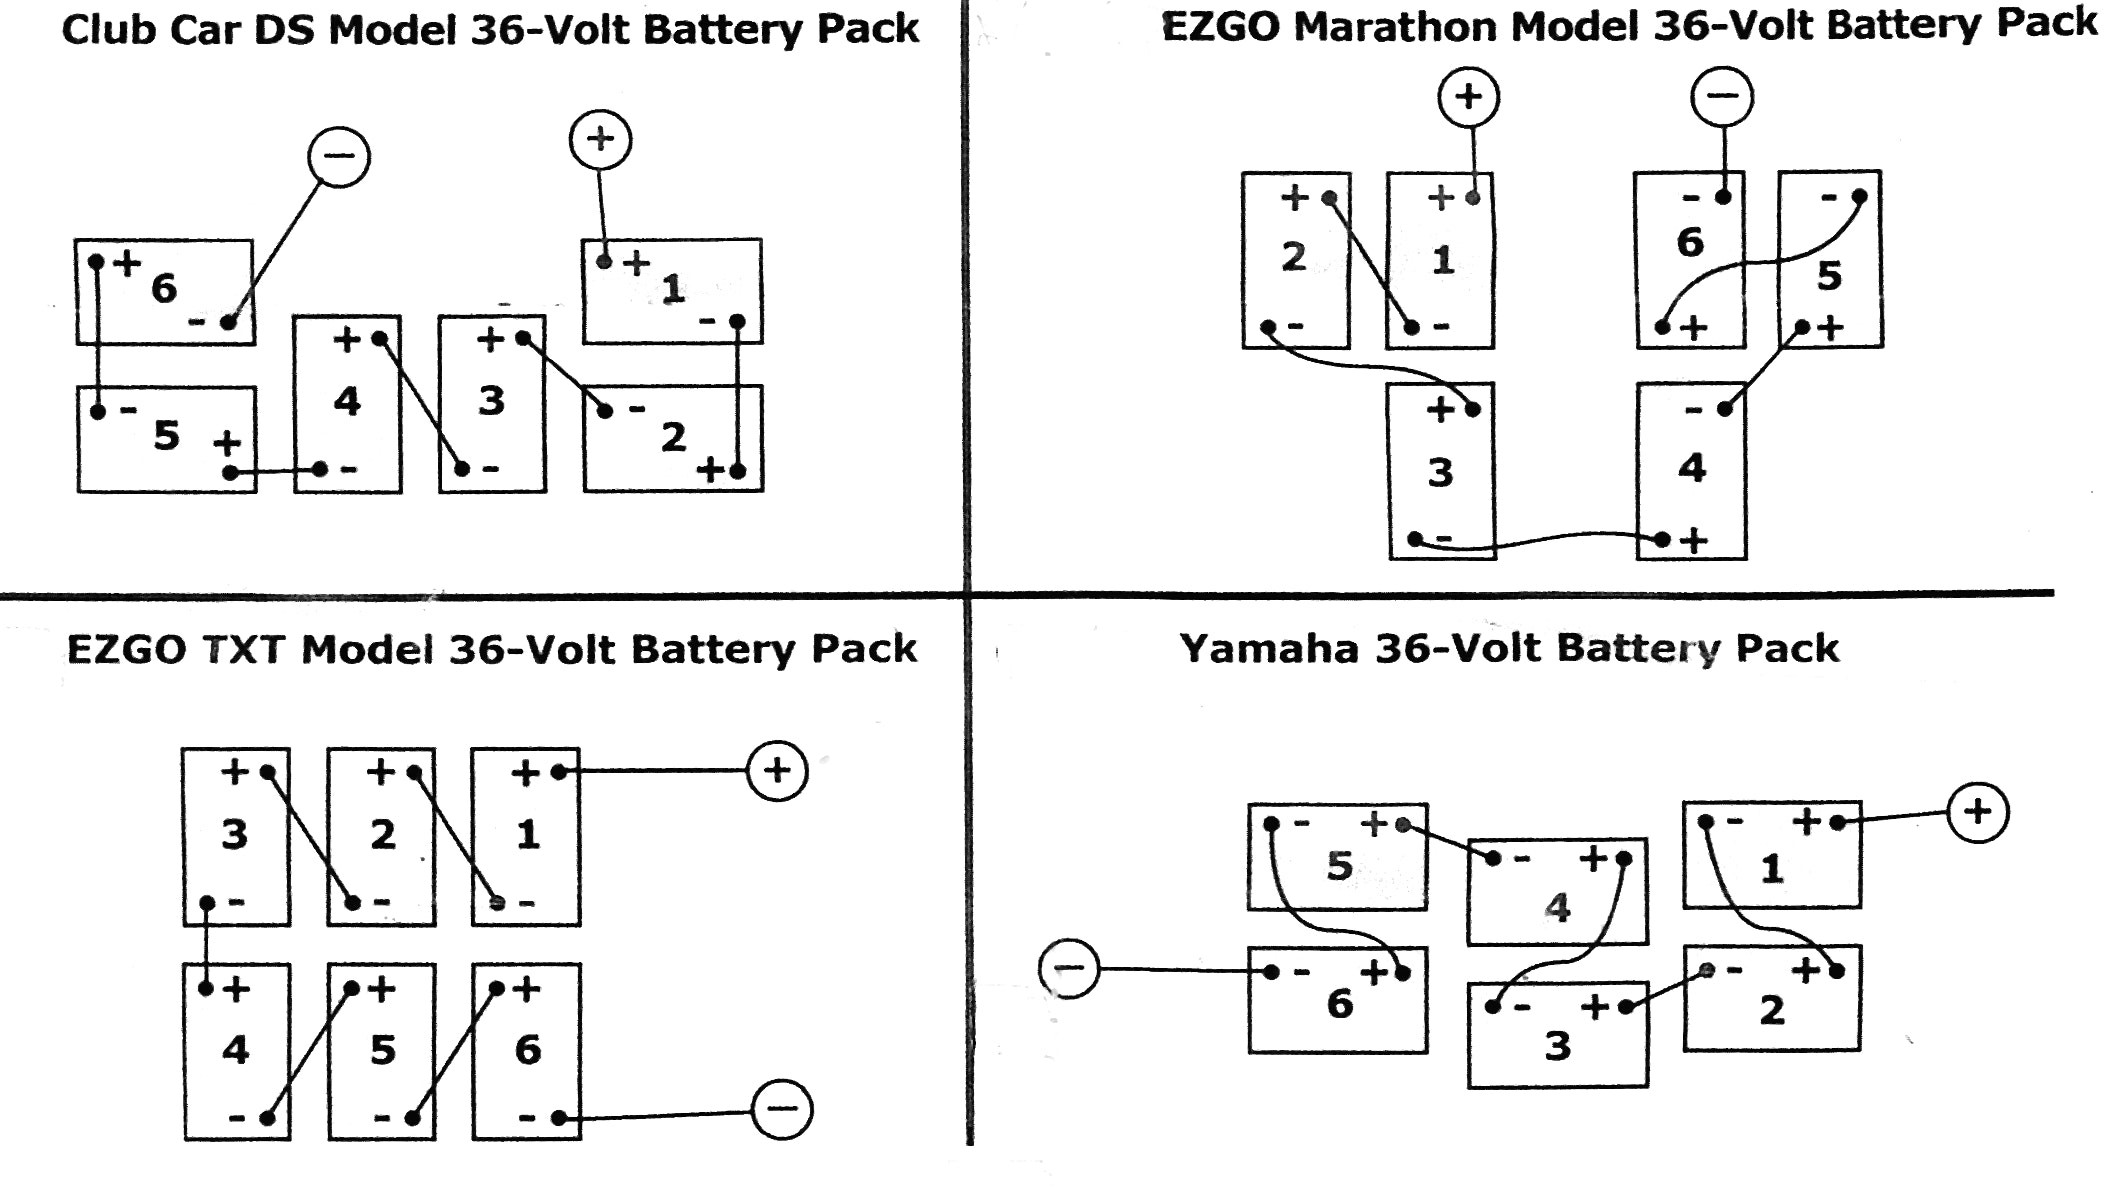 36 Volt Ezgo Battery Wiring Diagram Tnt 12 Starter 480480 Of Club Car Parts Inspiringlf Cart On